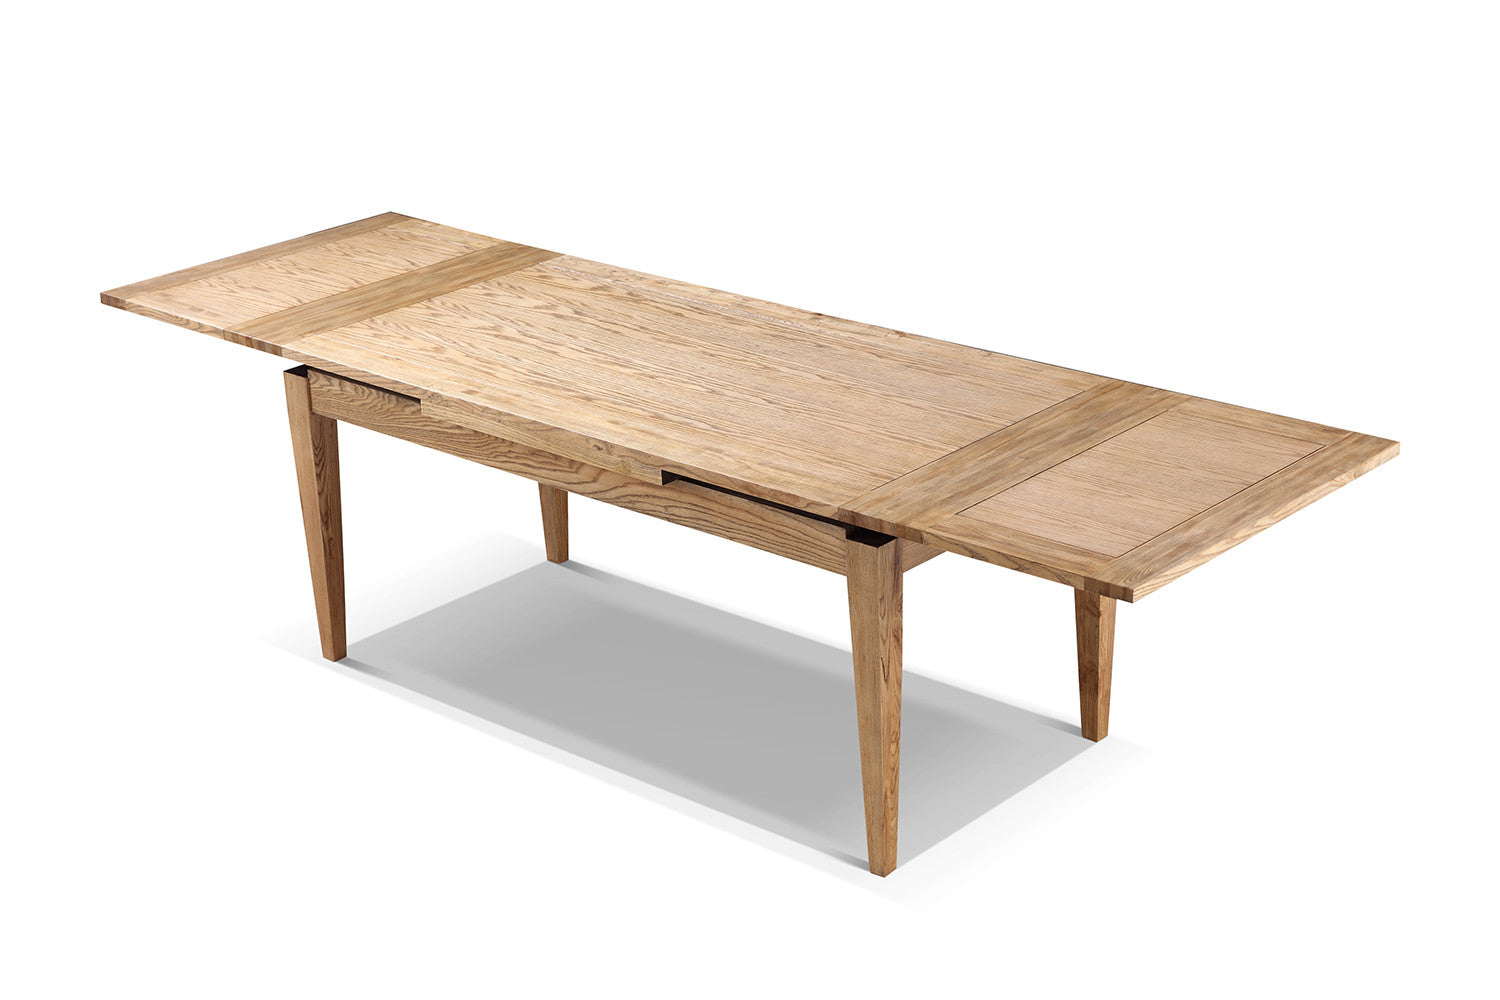 Table salle a manger extensible table salle a manger for Table salle a manger extensible fly